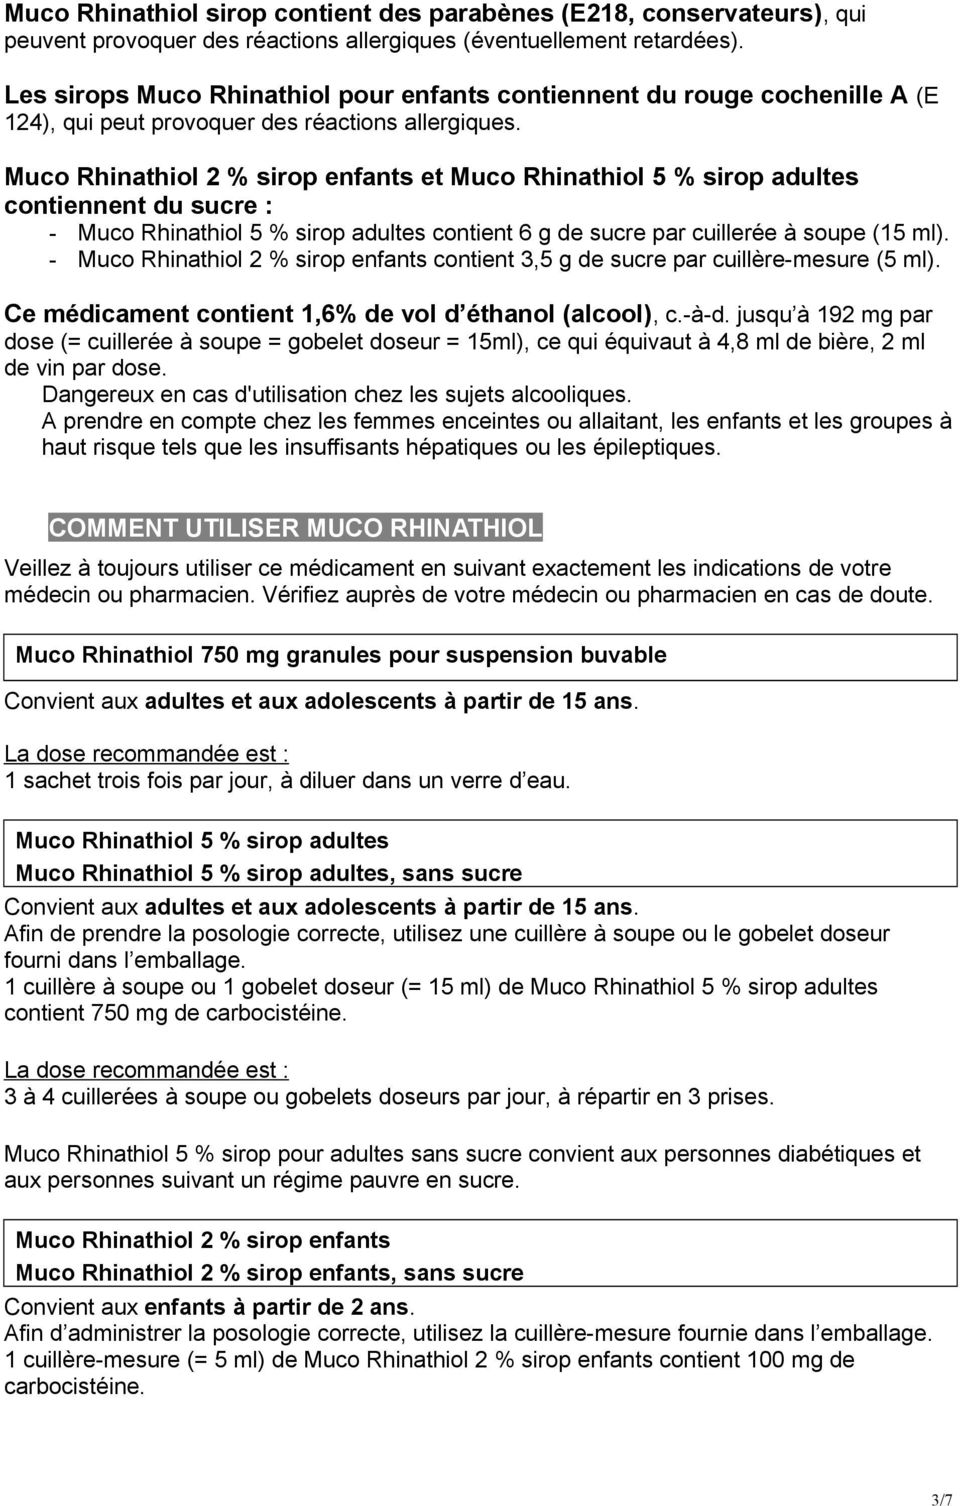 Muco Rhinathiol 2 % sirop enfants et Muco Rhinathiol 5 % sirop adultes contiennent du sucre : - Muco Rhinathiol 5 % sirop adultes contient 6 g de sucre par cuillerée à soupe (15 ml).